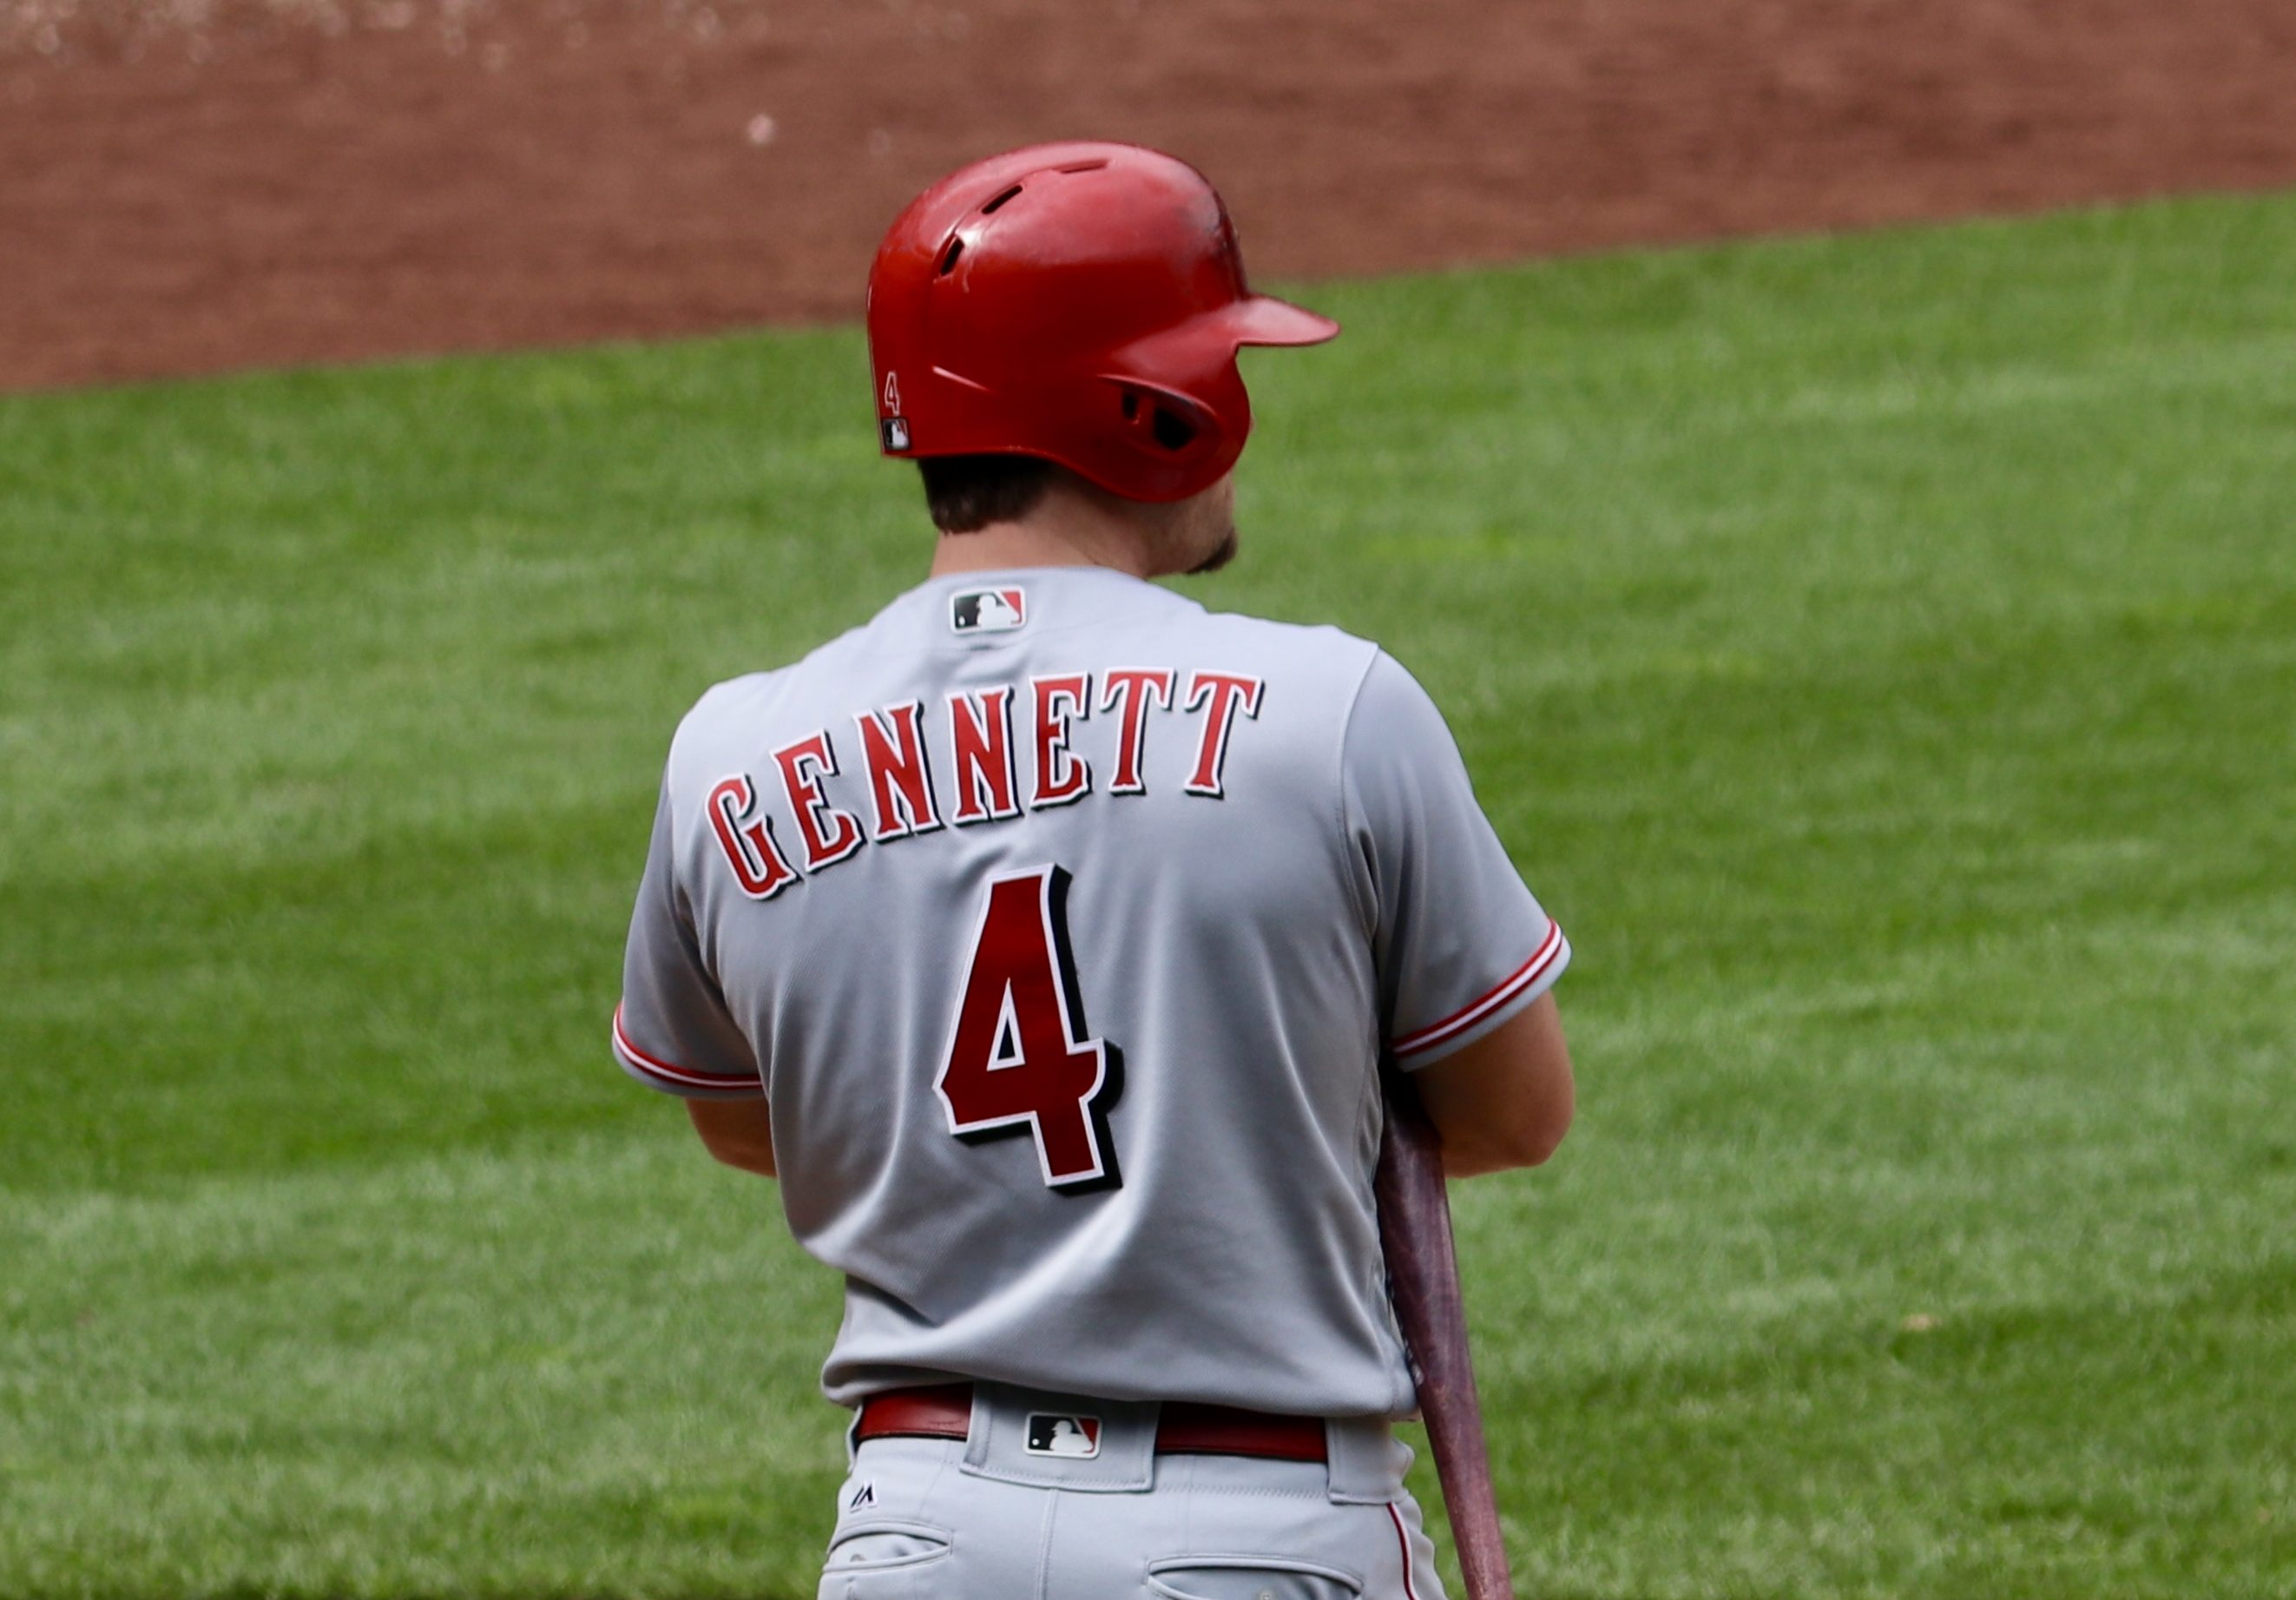 612aac669 Should the Reds try to sign Scooter Gennett to a long-term contract ...